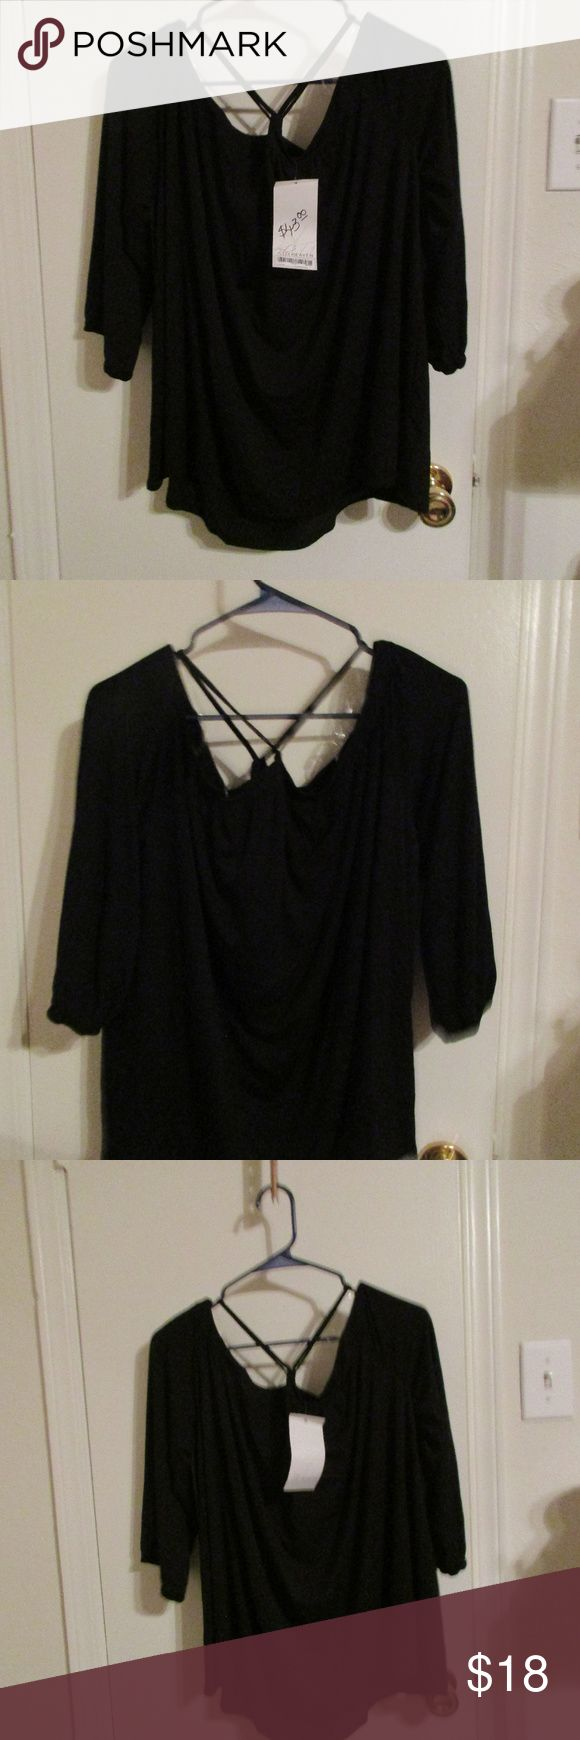 Blu Heaven black blouse off shoulder NWT Fits L-1X Blu Heaven black peasant blouse off shoulder NWT Sz L, this is off shoulder and fits generously, could fit an XL.  Measurement at armpits from side to side is 22 inches. Blu Heaven Tops Blouses